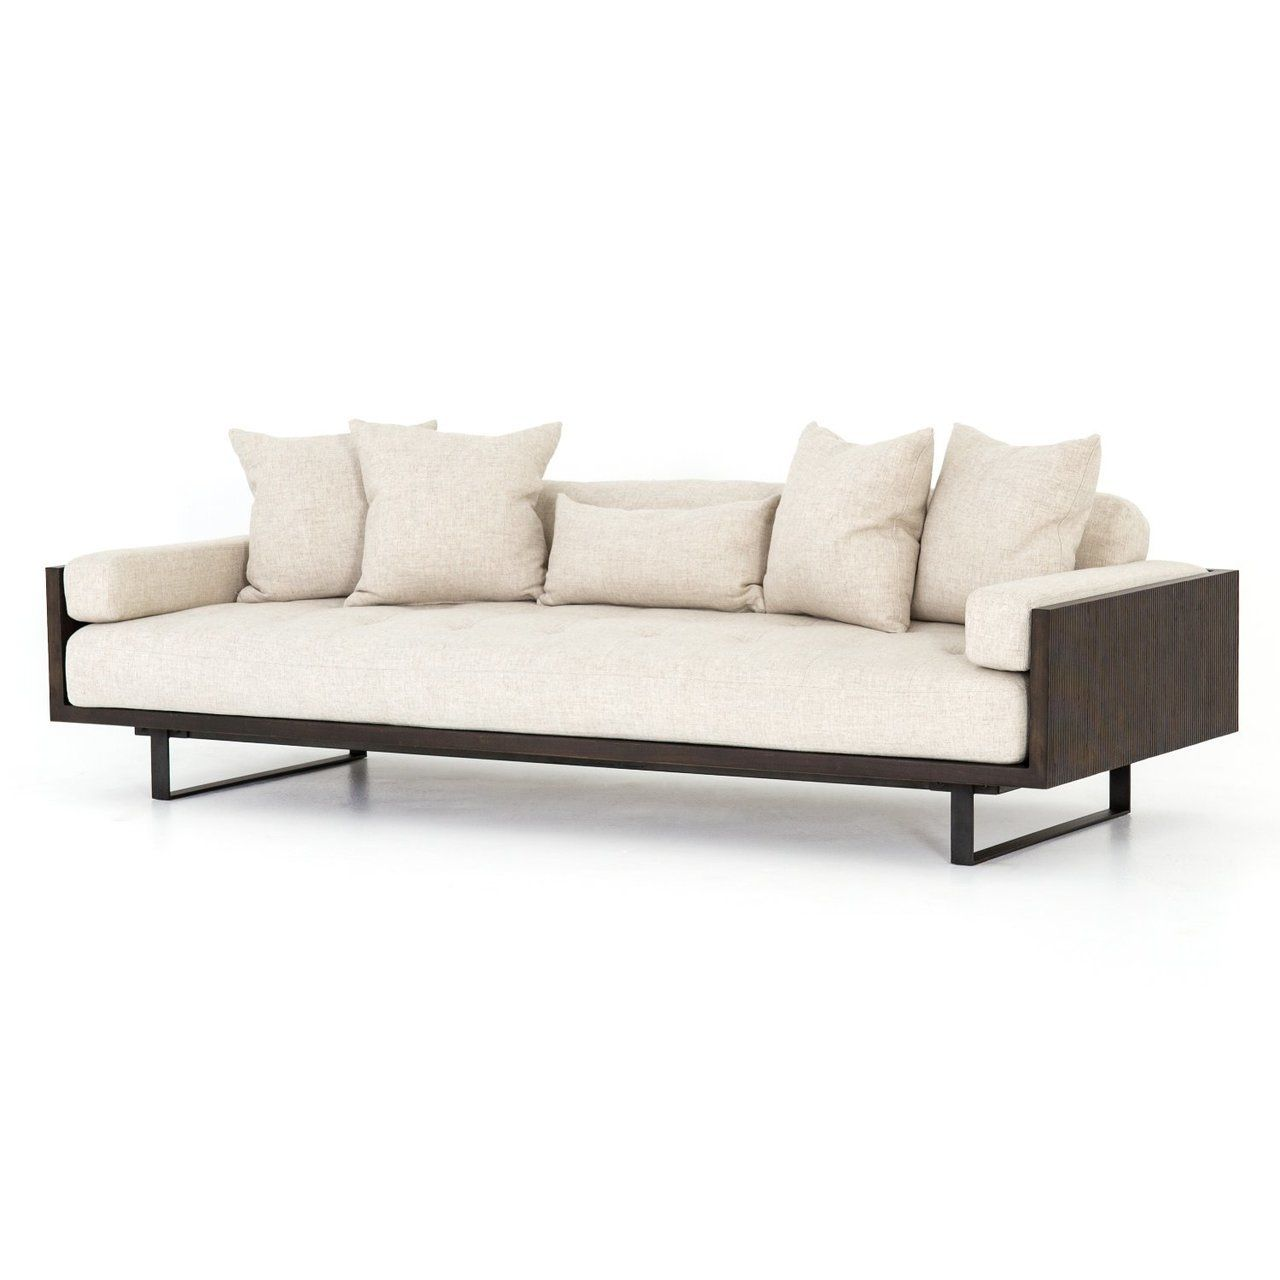 Preston Modern Tufted Sofa 99\